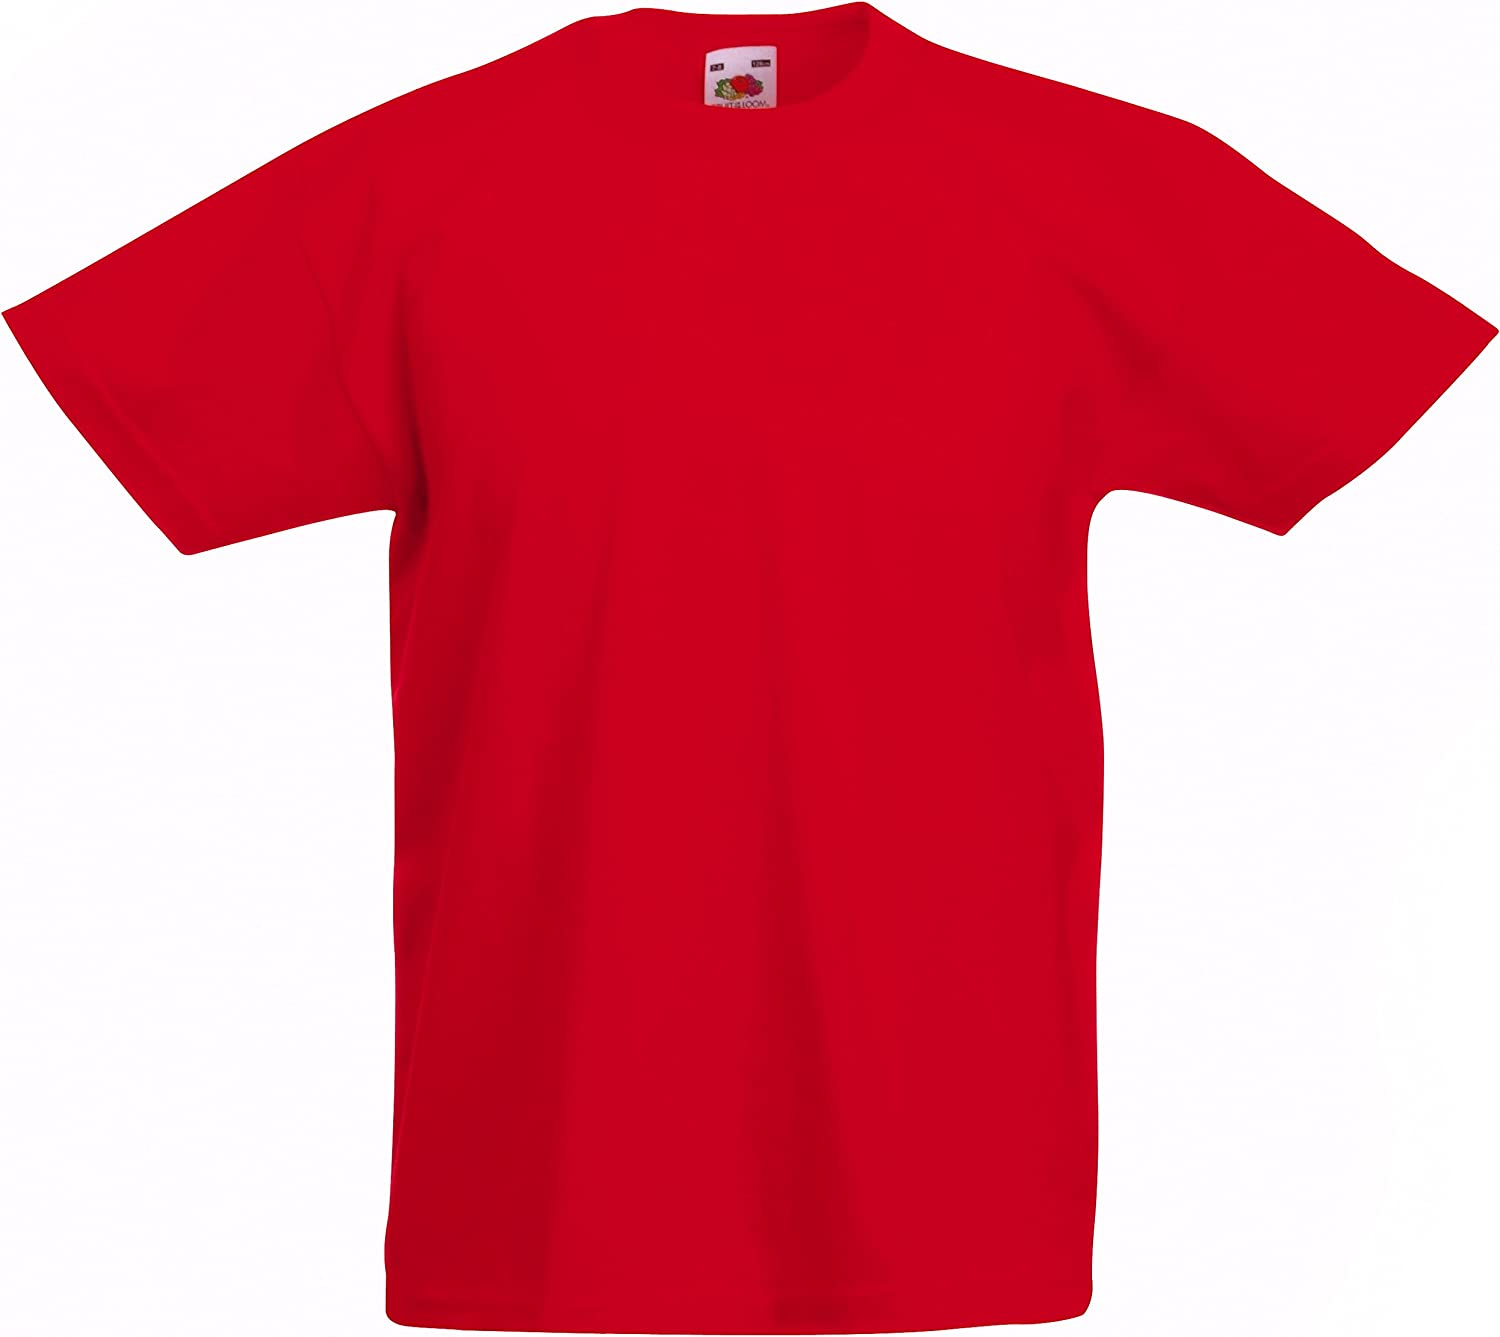 Fruit of the Loom Childrens T Shirt in Red